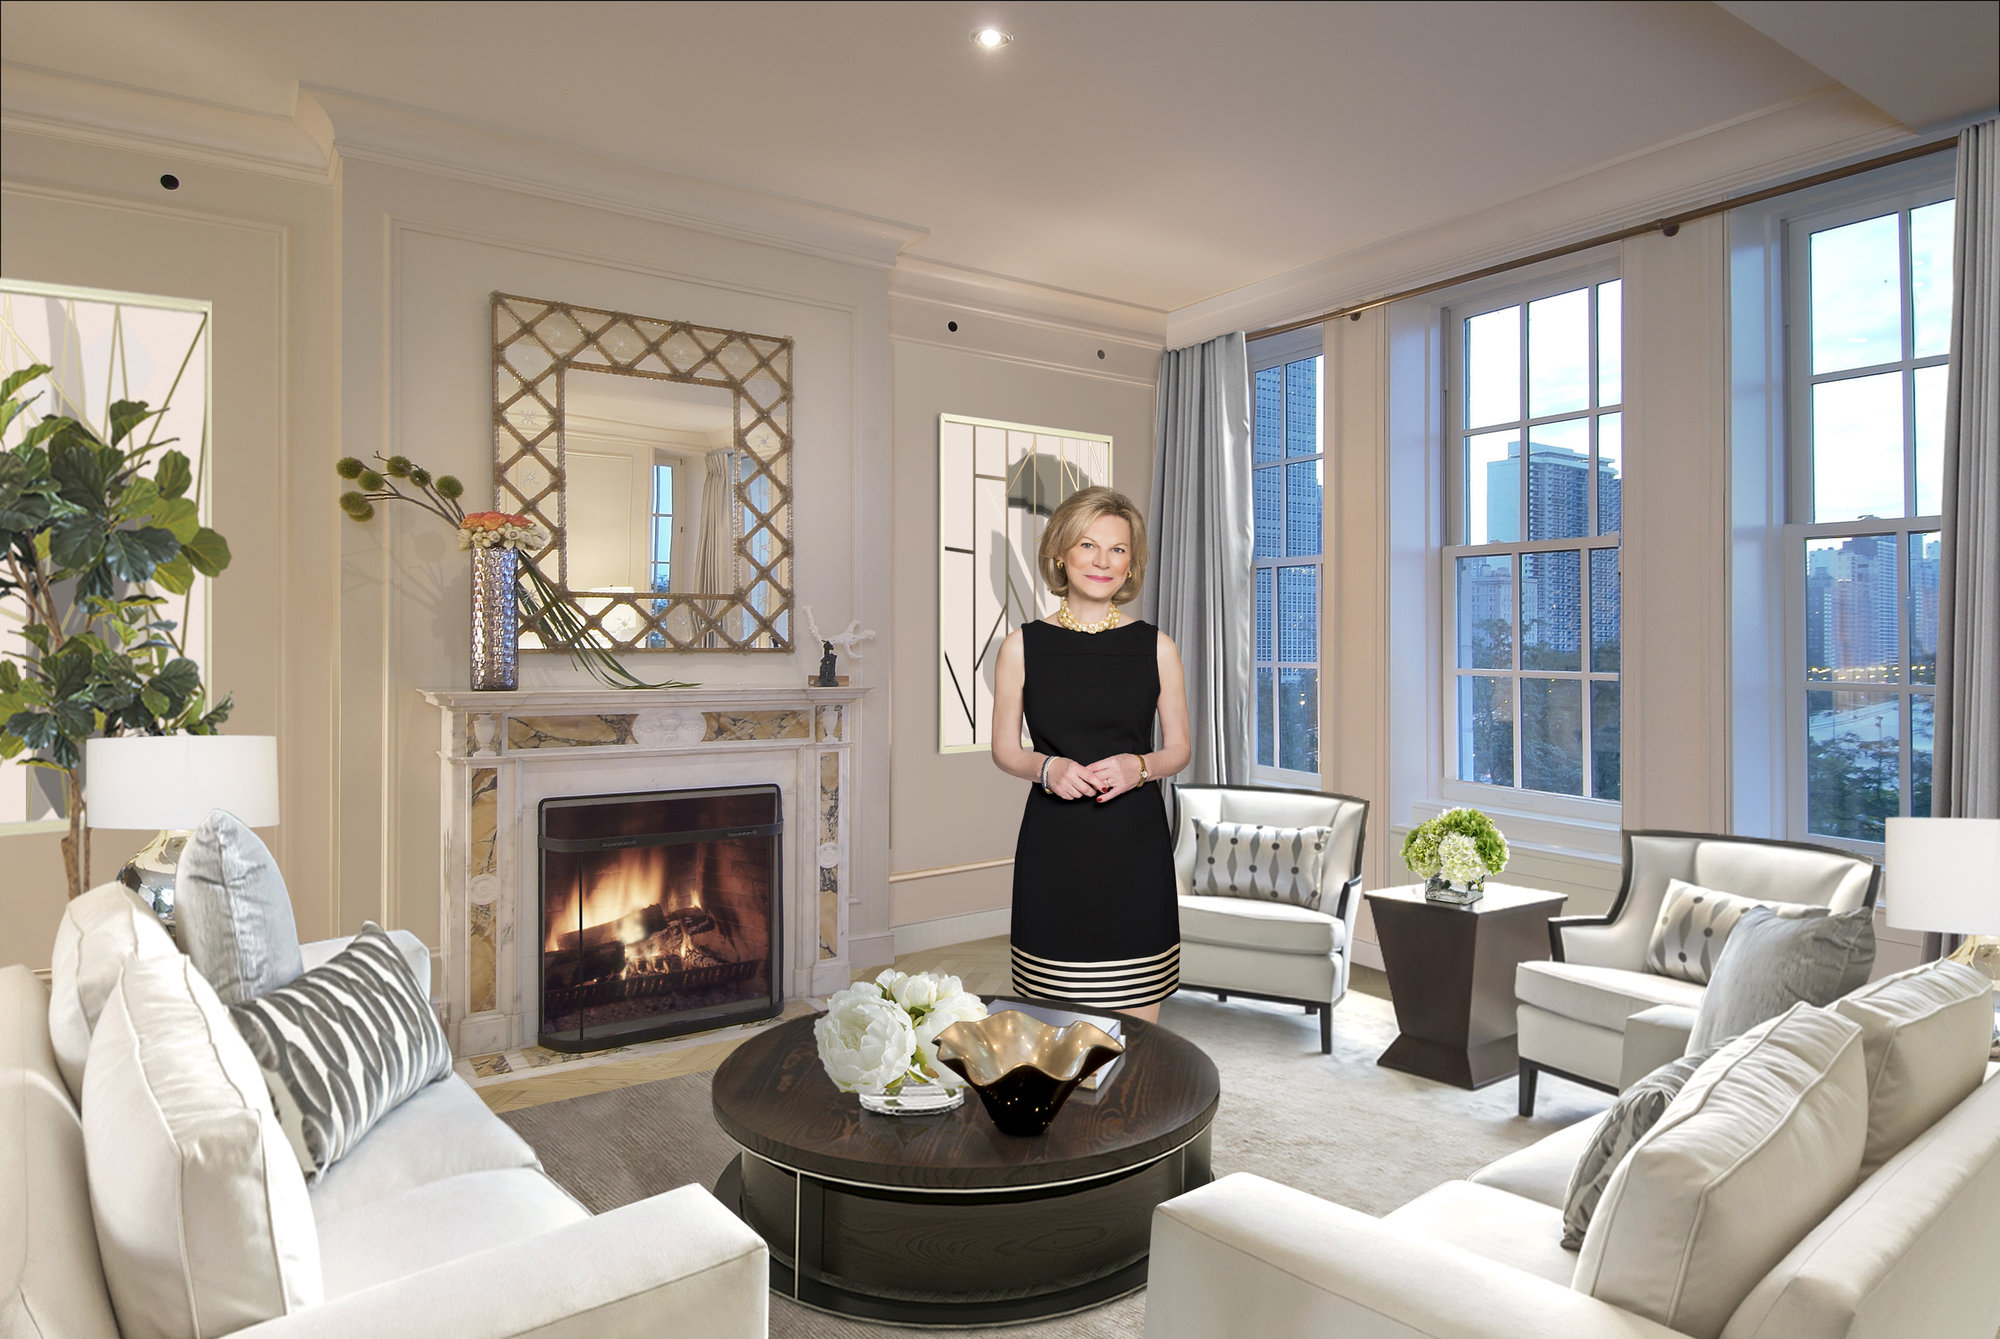 Linda Shaughnessy Luxury Real Estate Agent